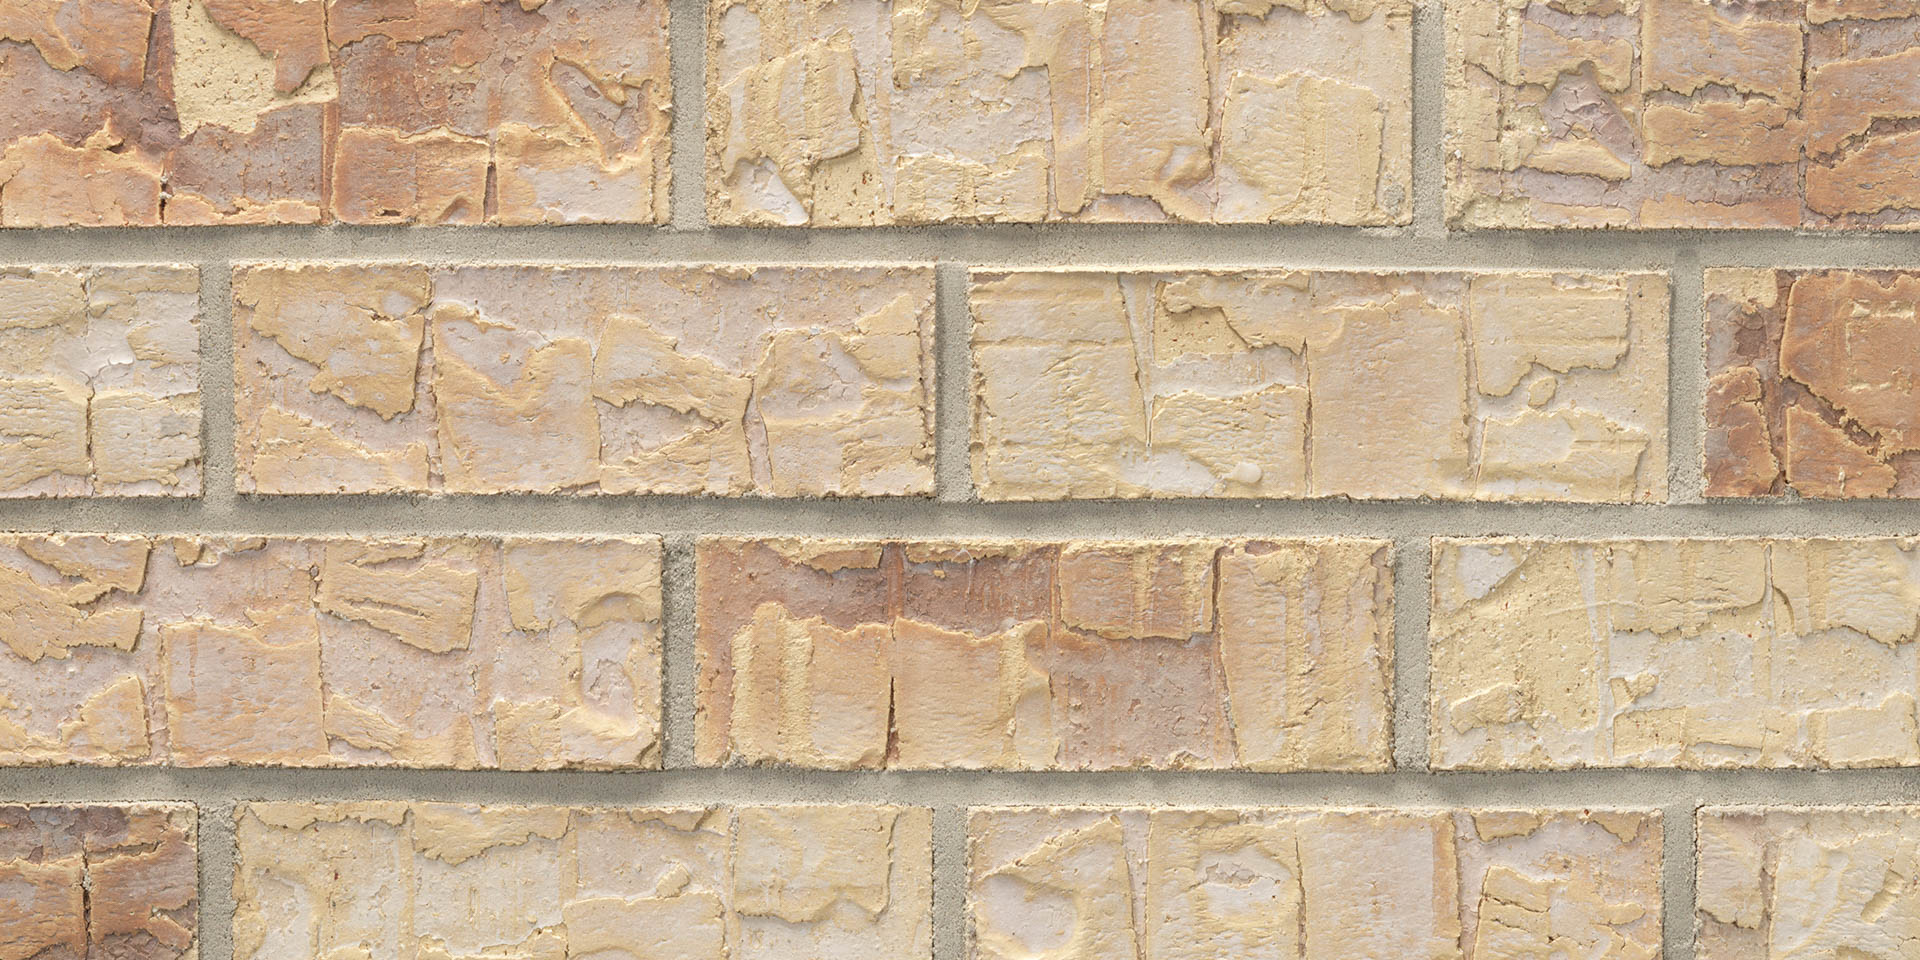 Acme® Brick Denver Old Charleston Modular Brick, Heritage